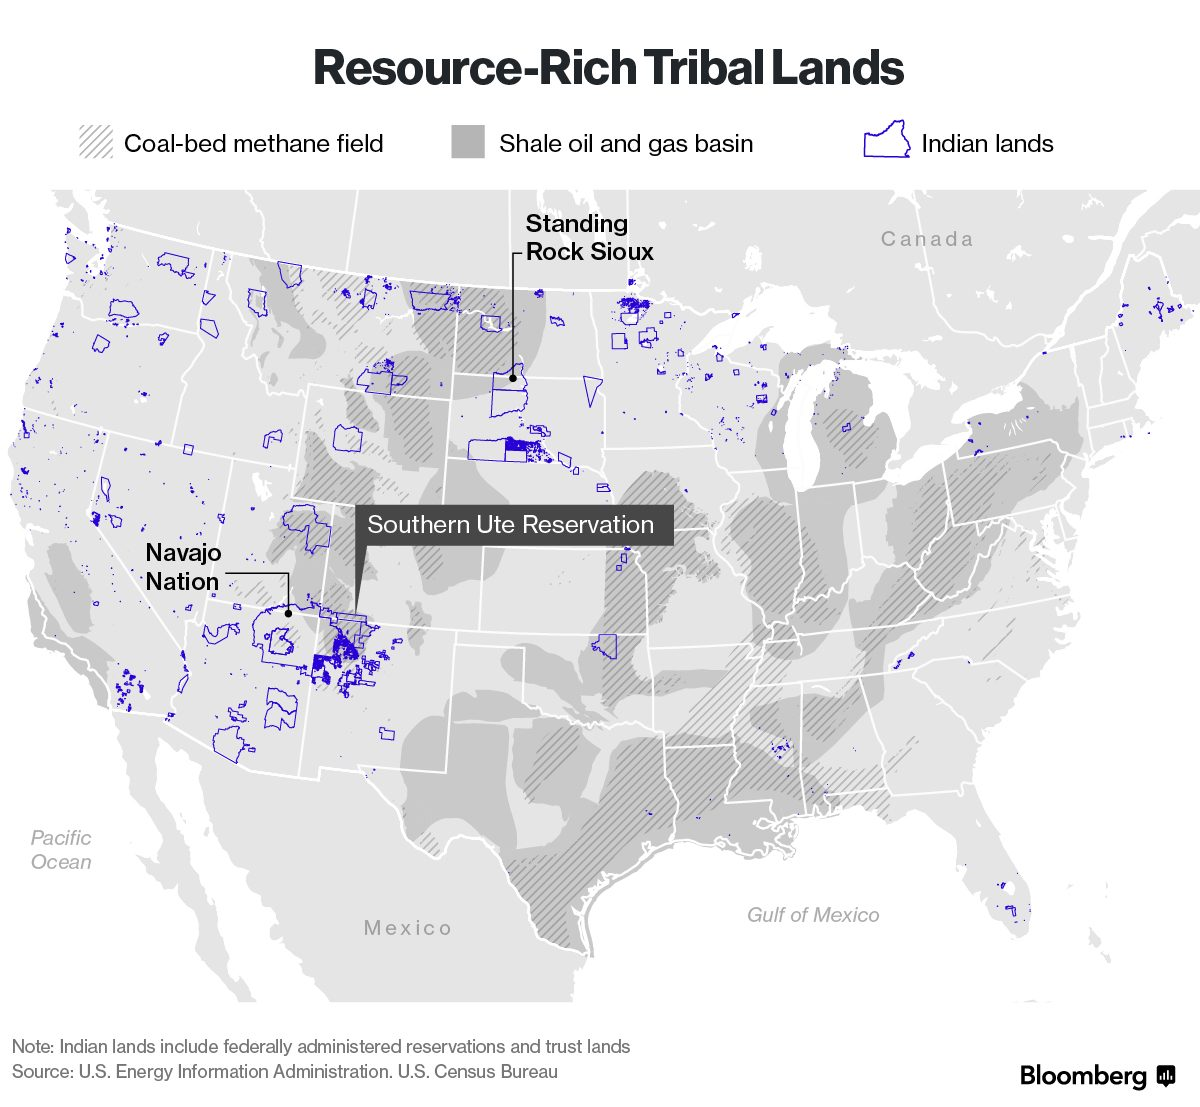 Historic Visualizations Of Pipelines Spills And The Bakken Oil Boom